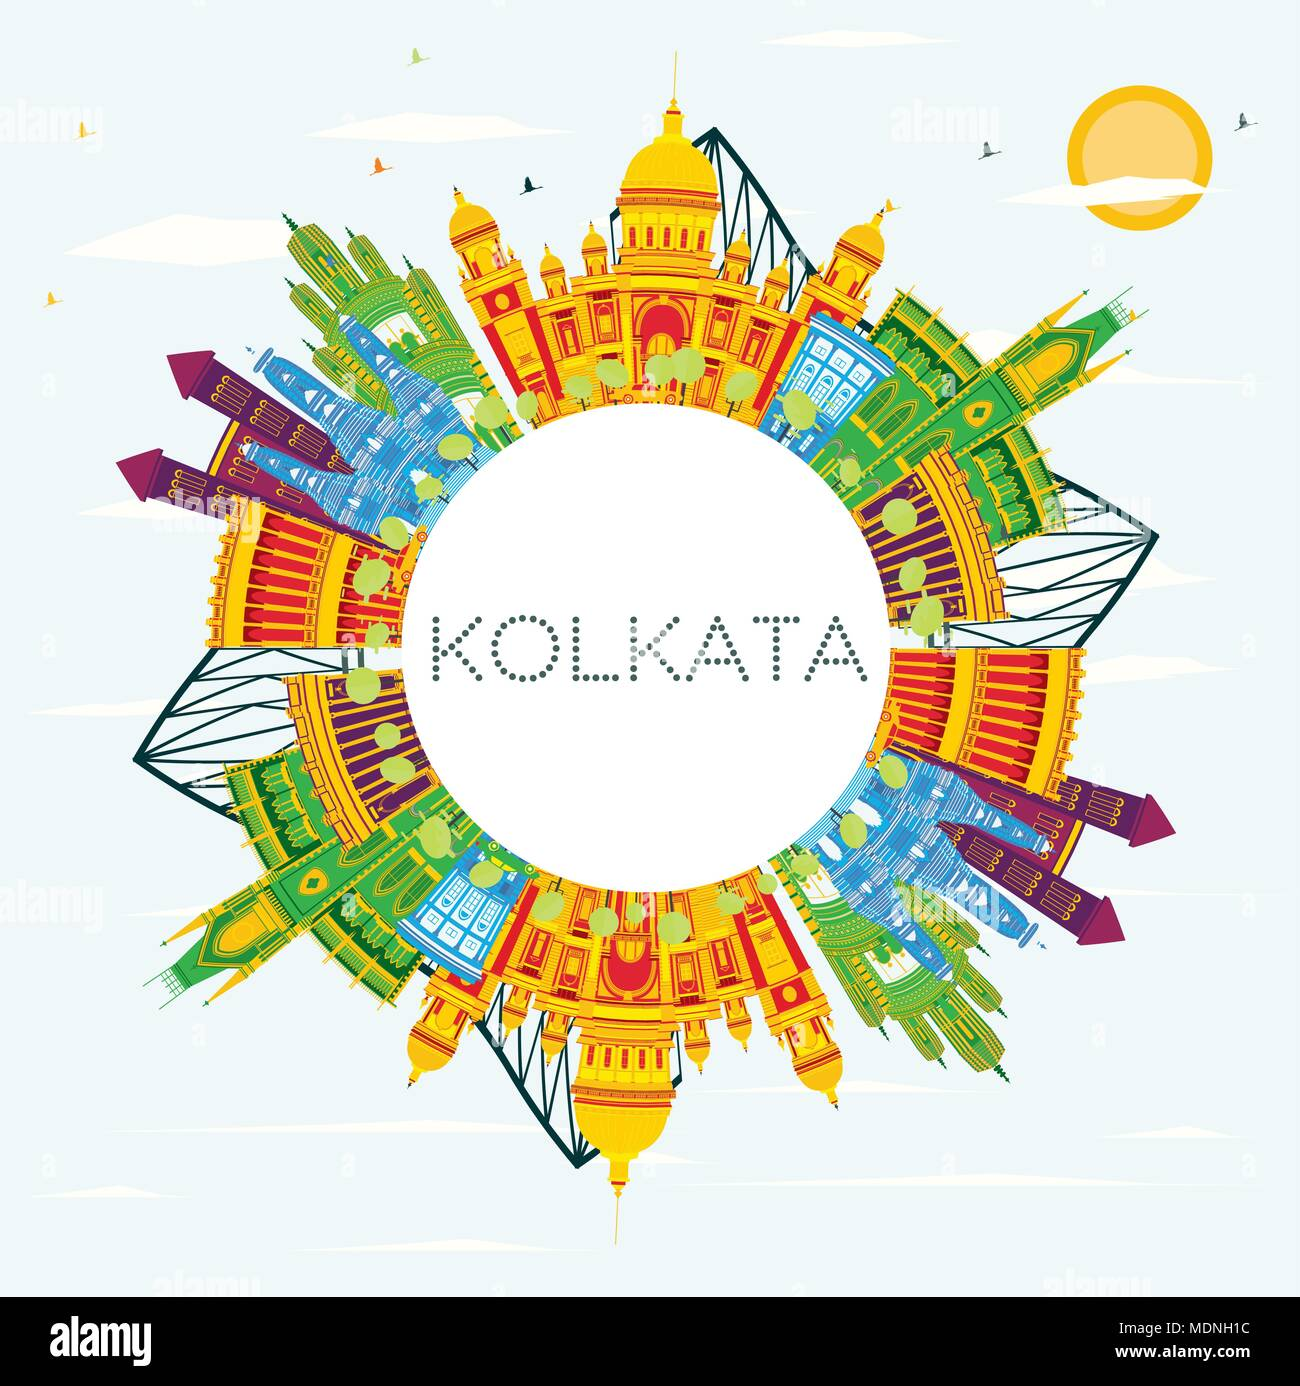 Kolkata India Skyline with Color Buildings, Blue Sky and Copy Space. Vector Illustration. Business Travel and Tourism Concept with Historic Buildings. - Stock Vector